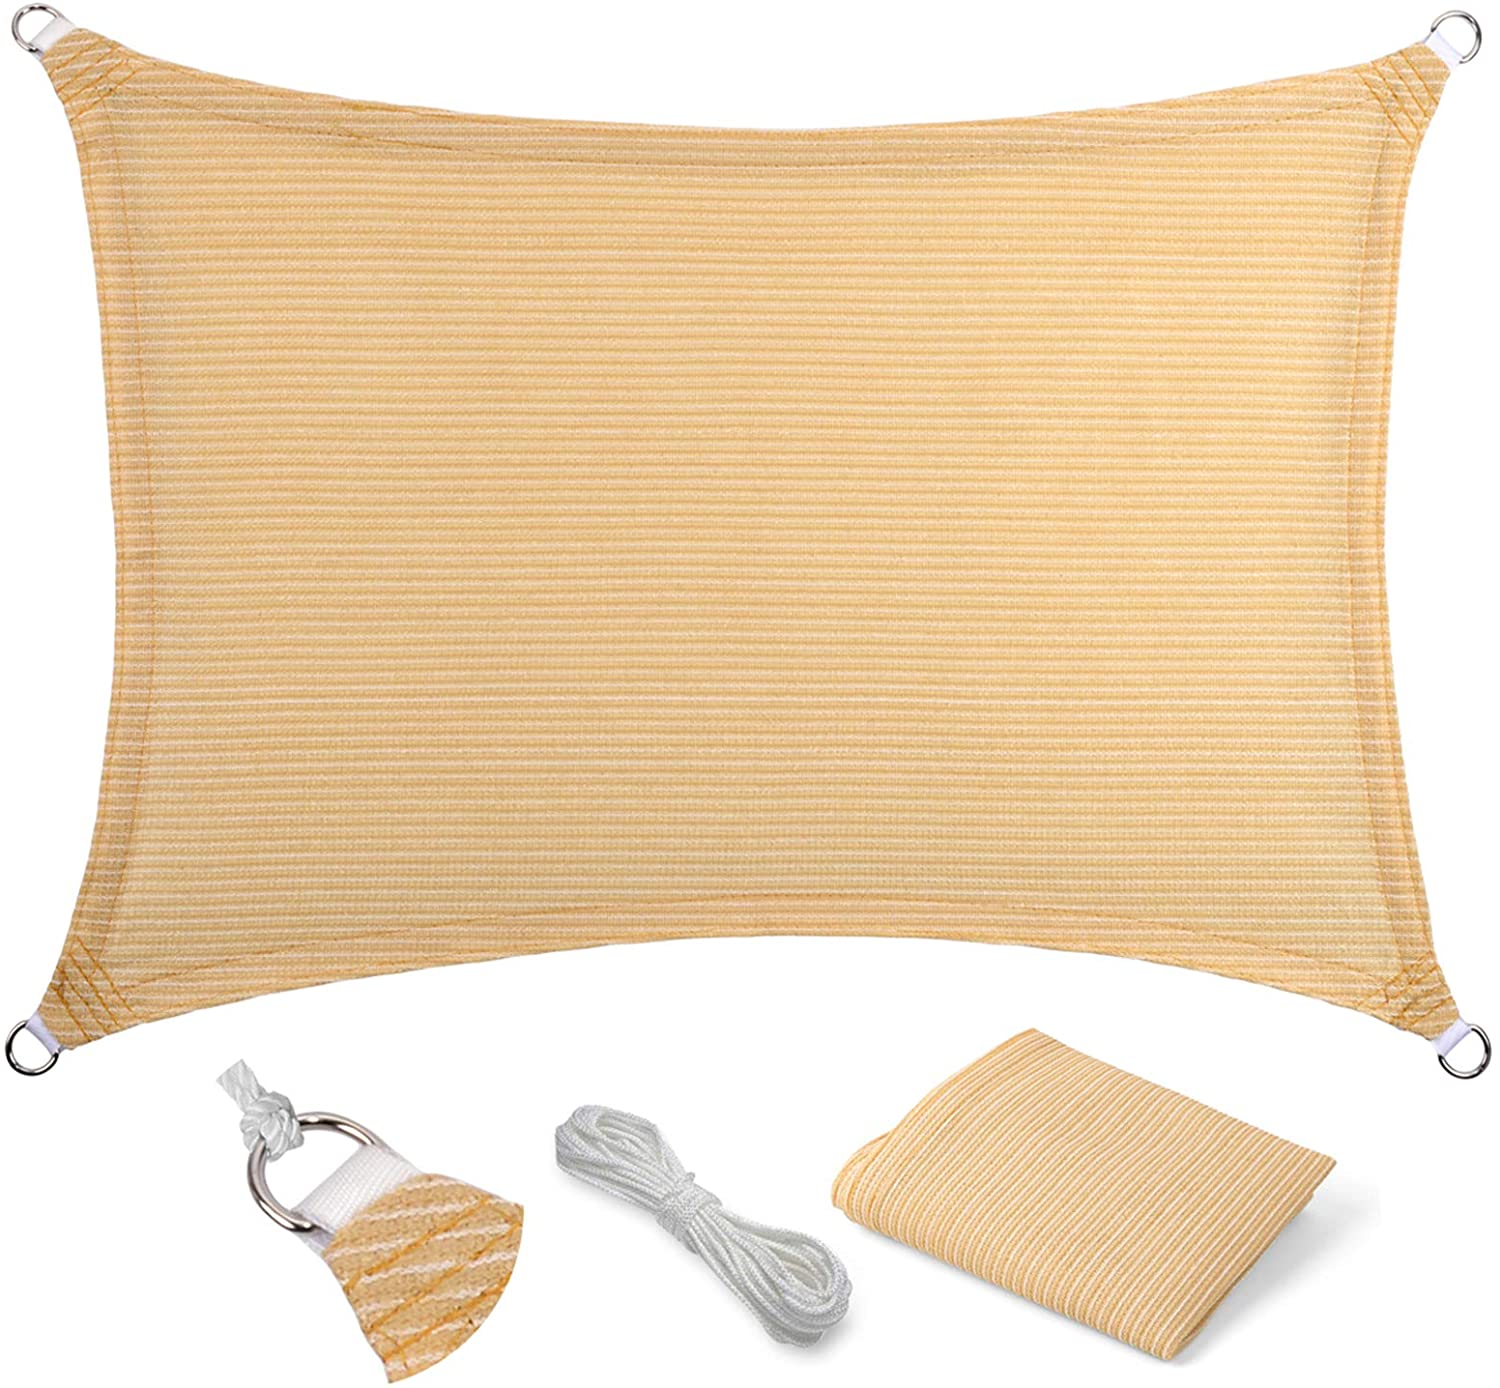 Sun Shade Sail Rectangular Outdoor with Durable Thick Air-Permeable UV Block Canopy Fabric Material for Garden, Patio, Swimming Pool, Backyard, Driveway, Fence, Deck, Carport (10' X 12', Beige)